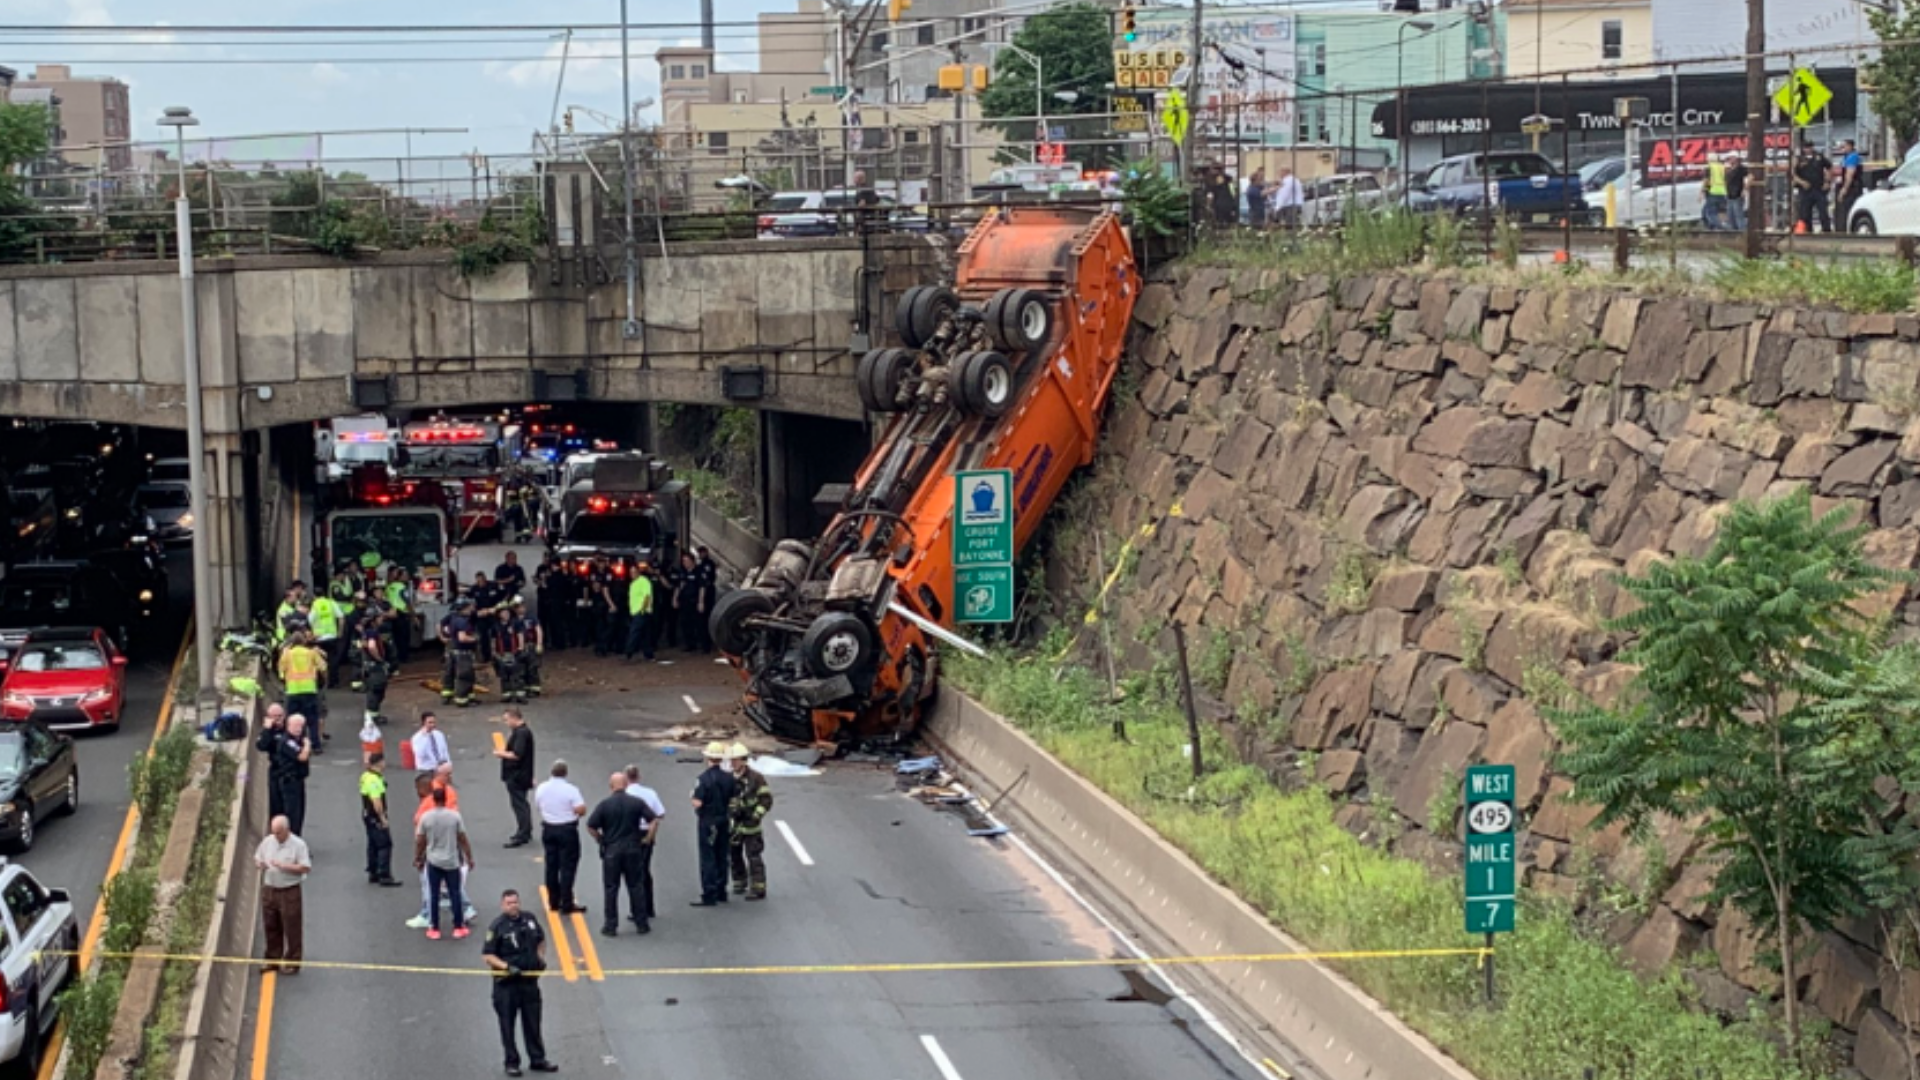 Truck crash snarls commute out of NYC on eve of holiday